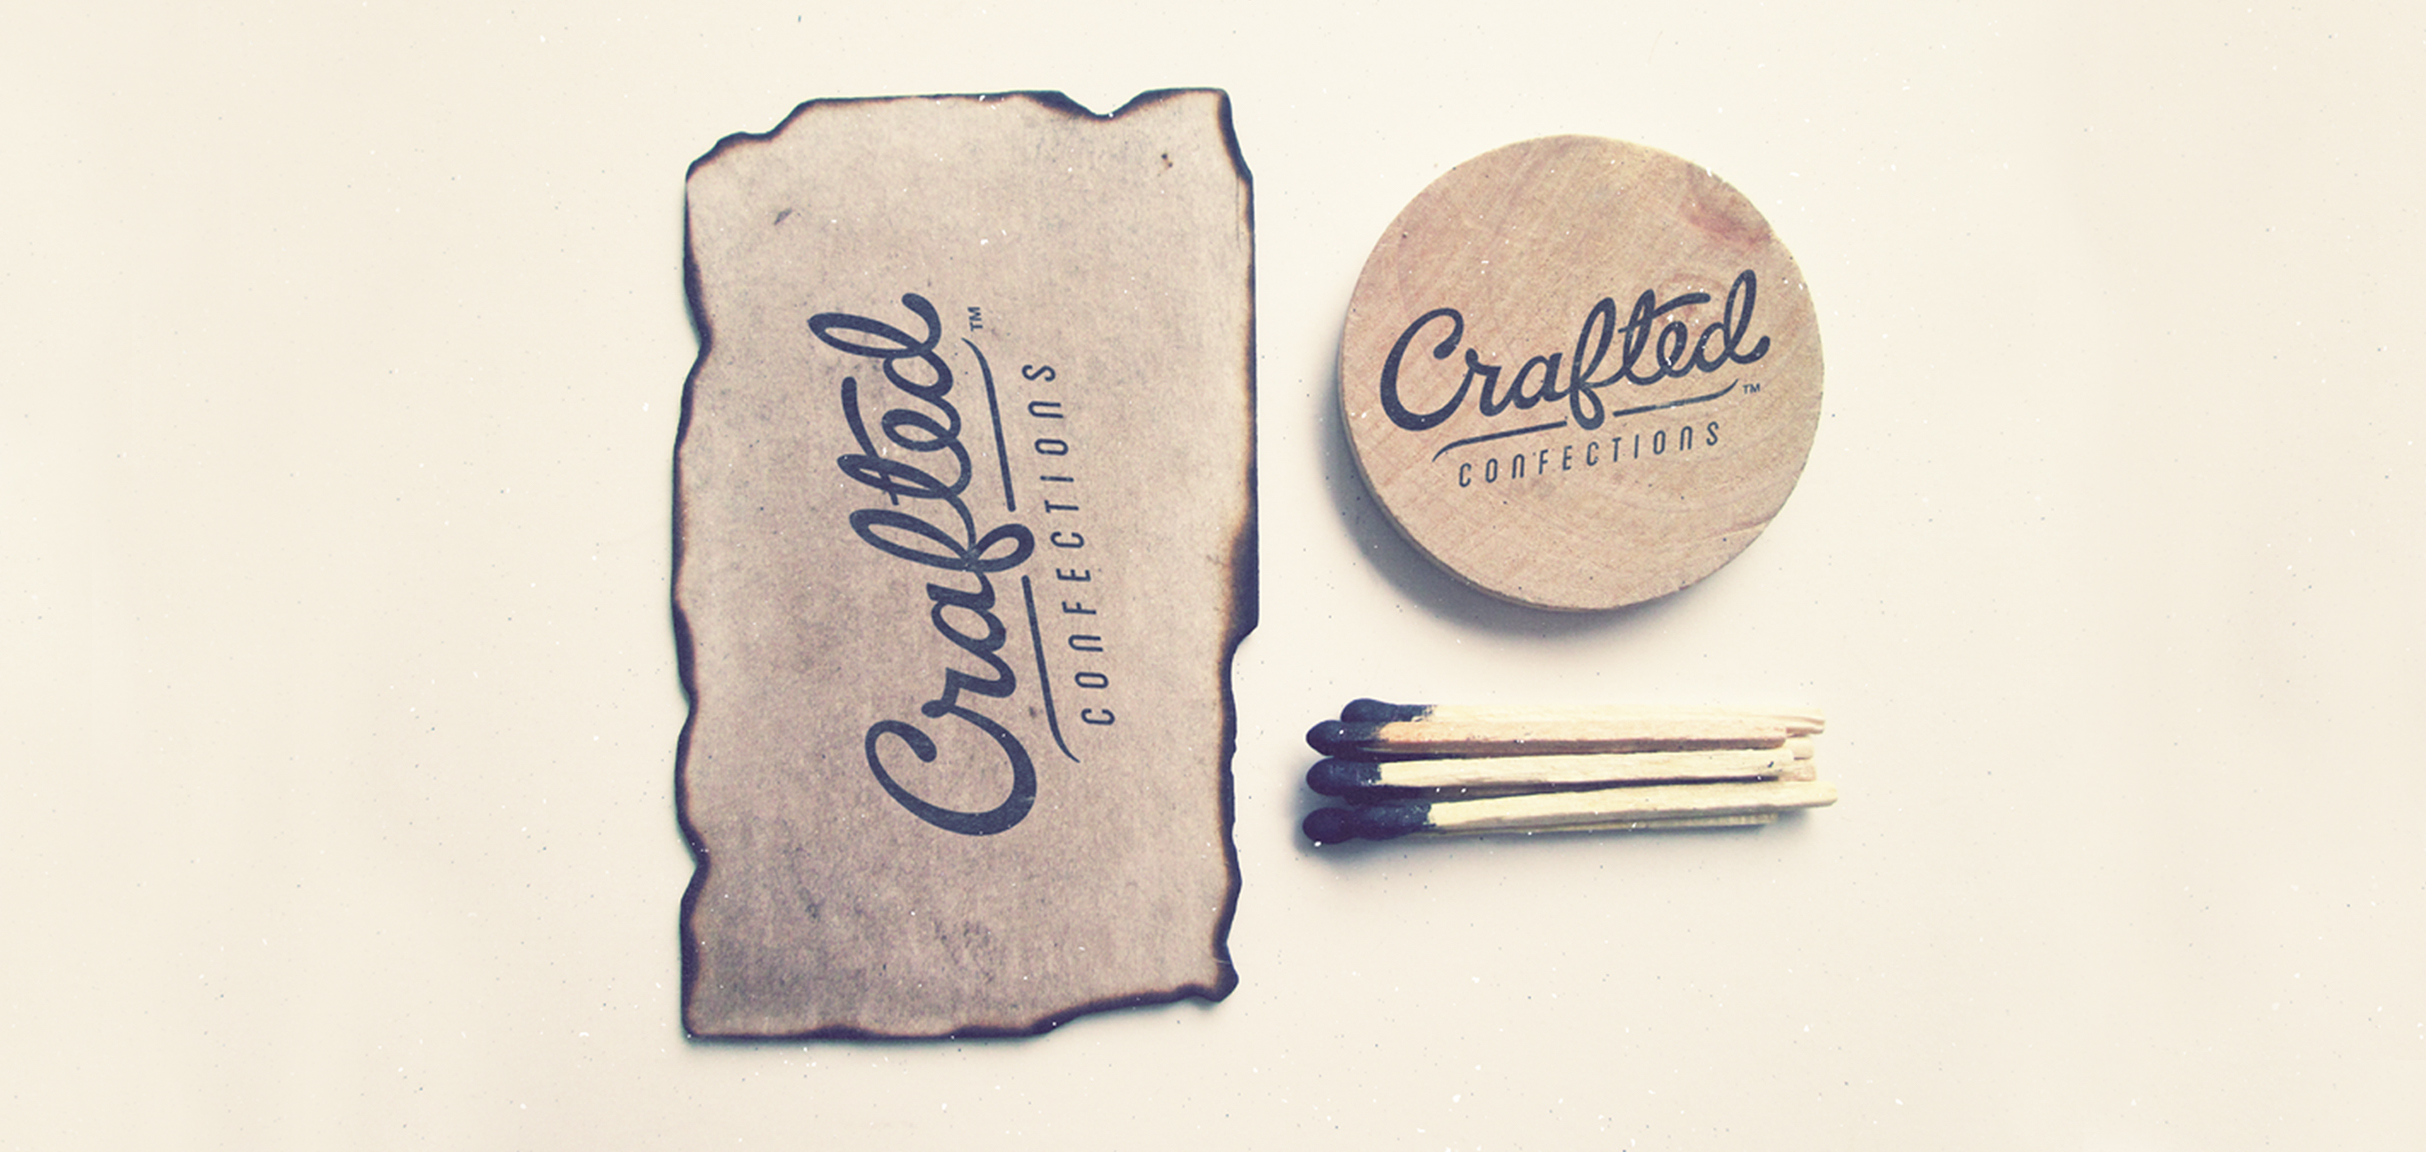 Crafted-Confections